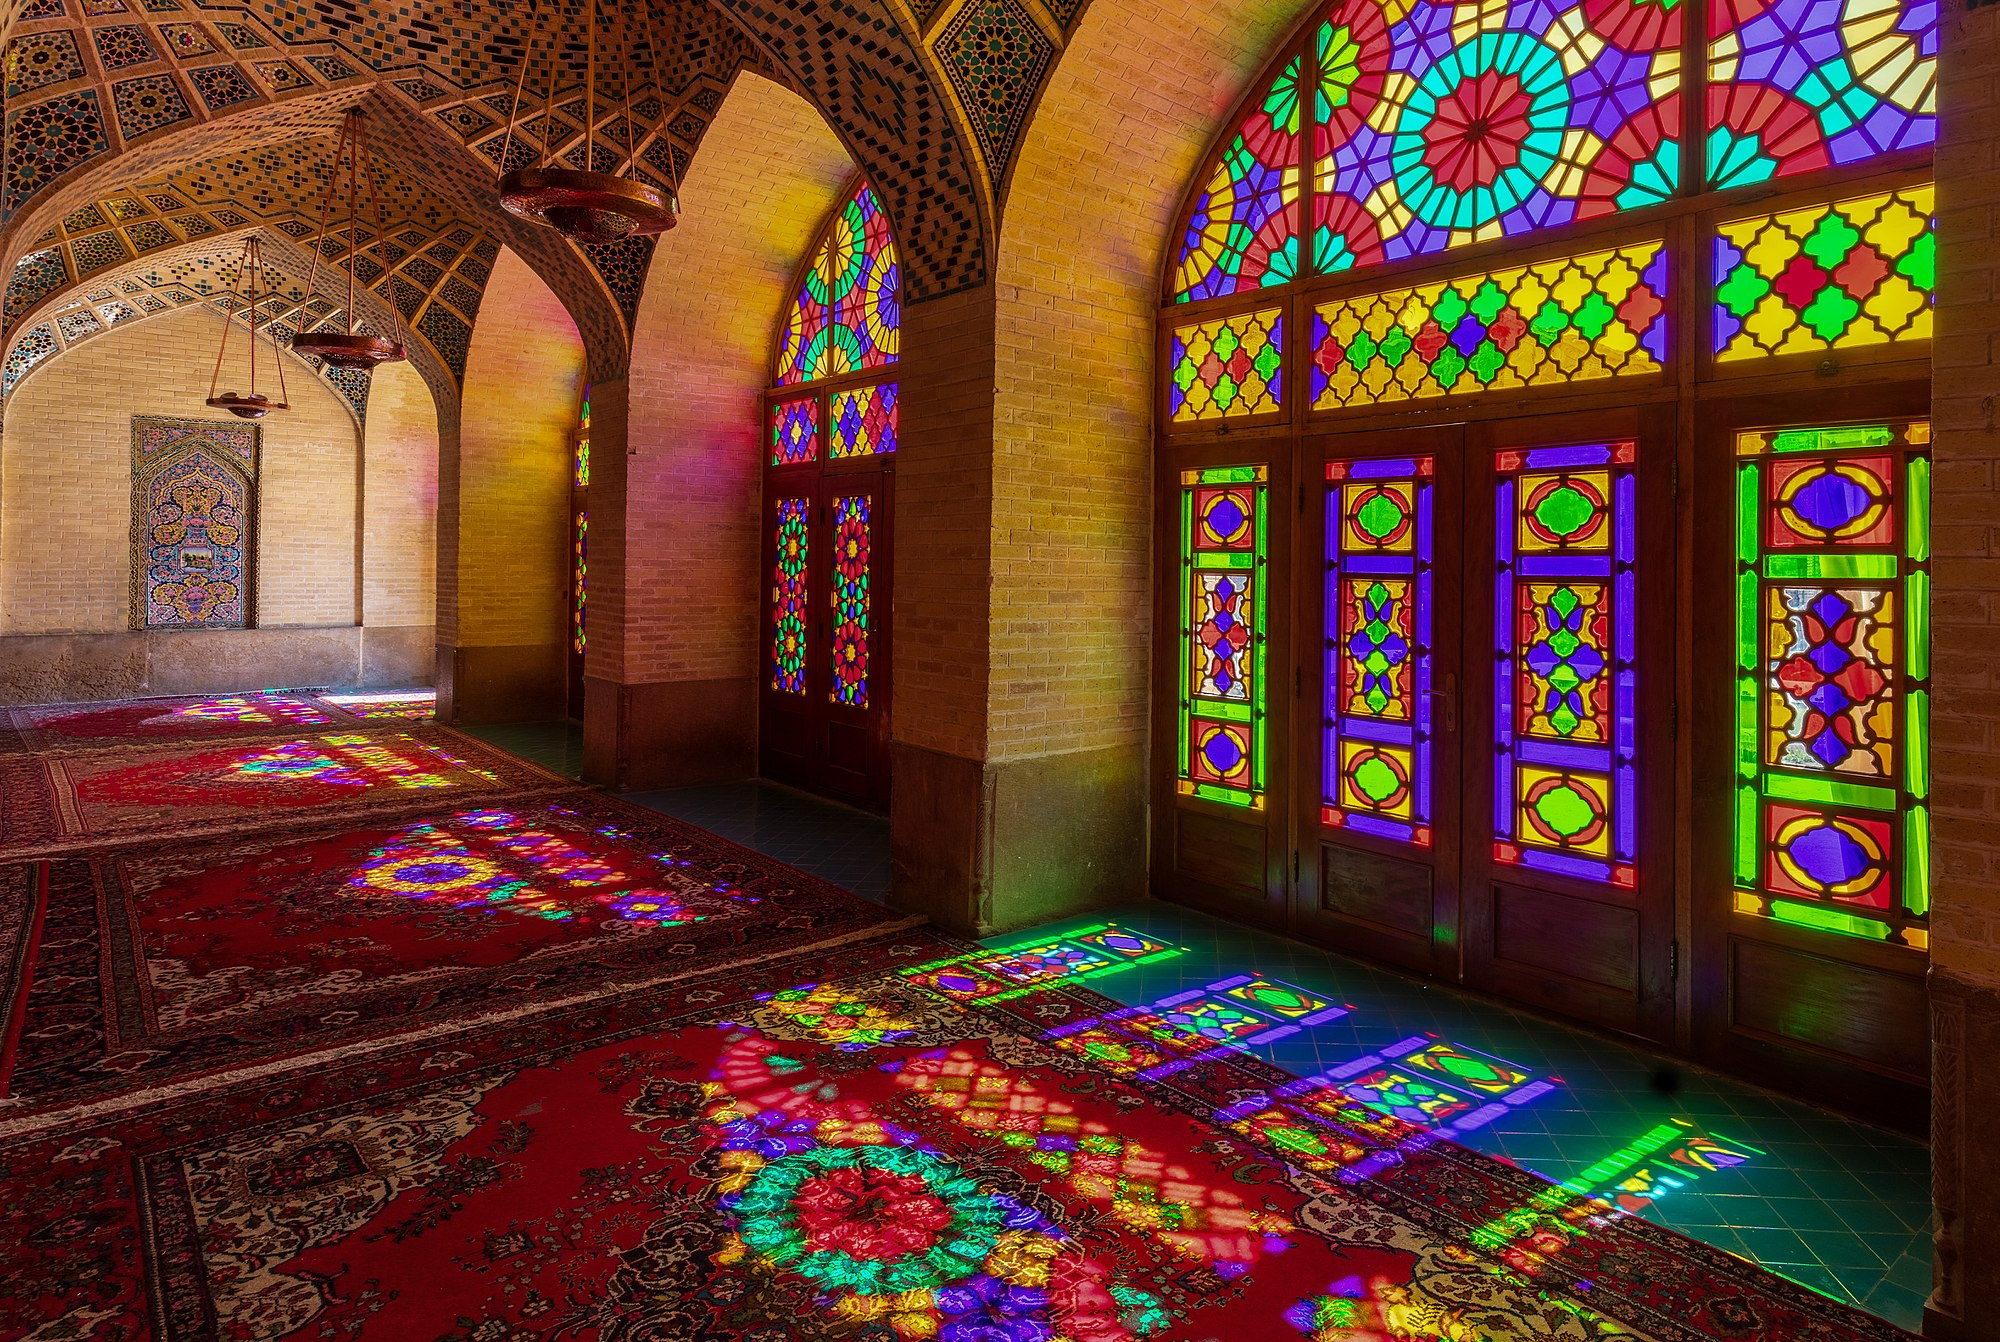 Colored windows seen from the interior of the Nasir-ol-Molk Mosque, also known as the Pink Mosque, a traditional mosque located in Shiraz district of Gouwd-e-Arabān, Iran. The mosque was built from 1876 to 1888, by the order of Mirzā Hasan Ali (Nasir ol Molk), a Qajar ruler.